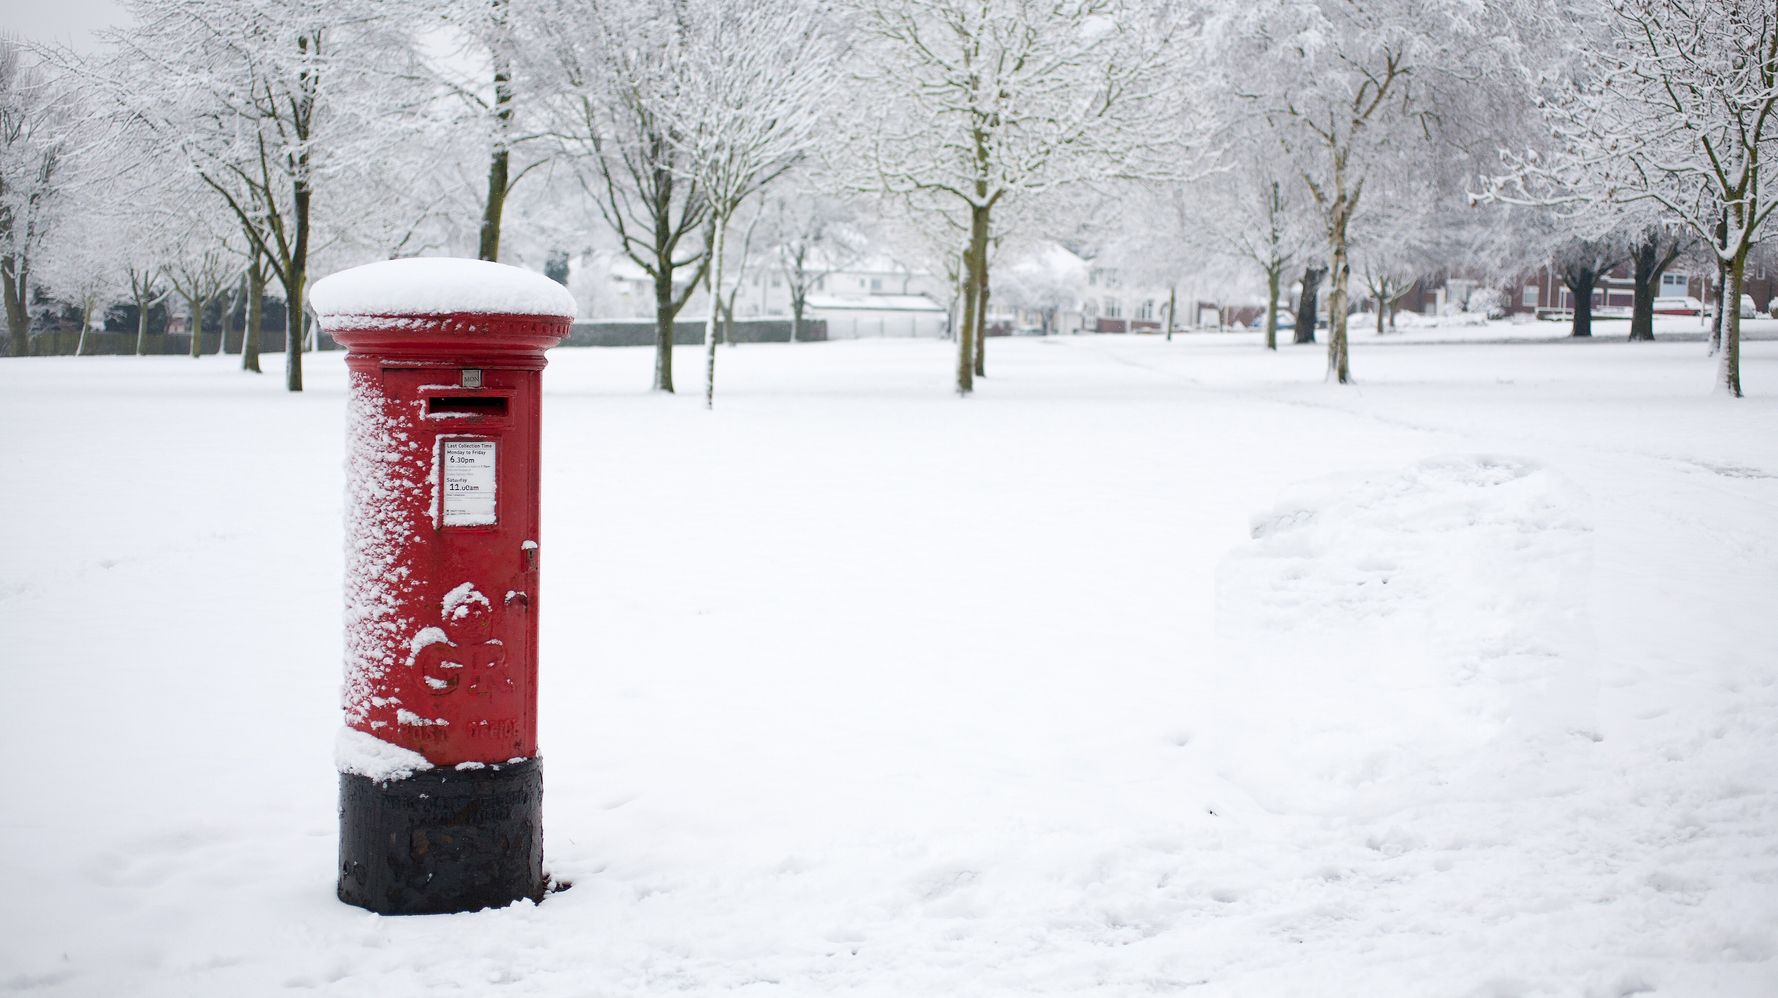 10 Letterbox Christmas Gifts That Will Fit In The Post